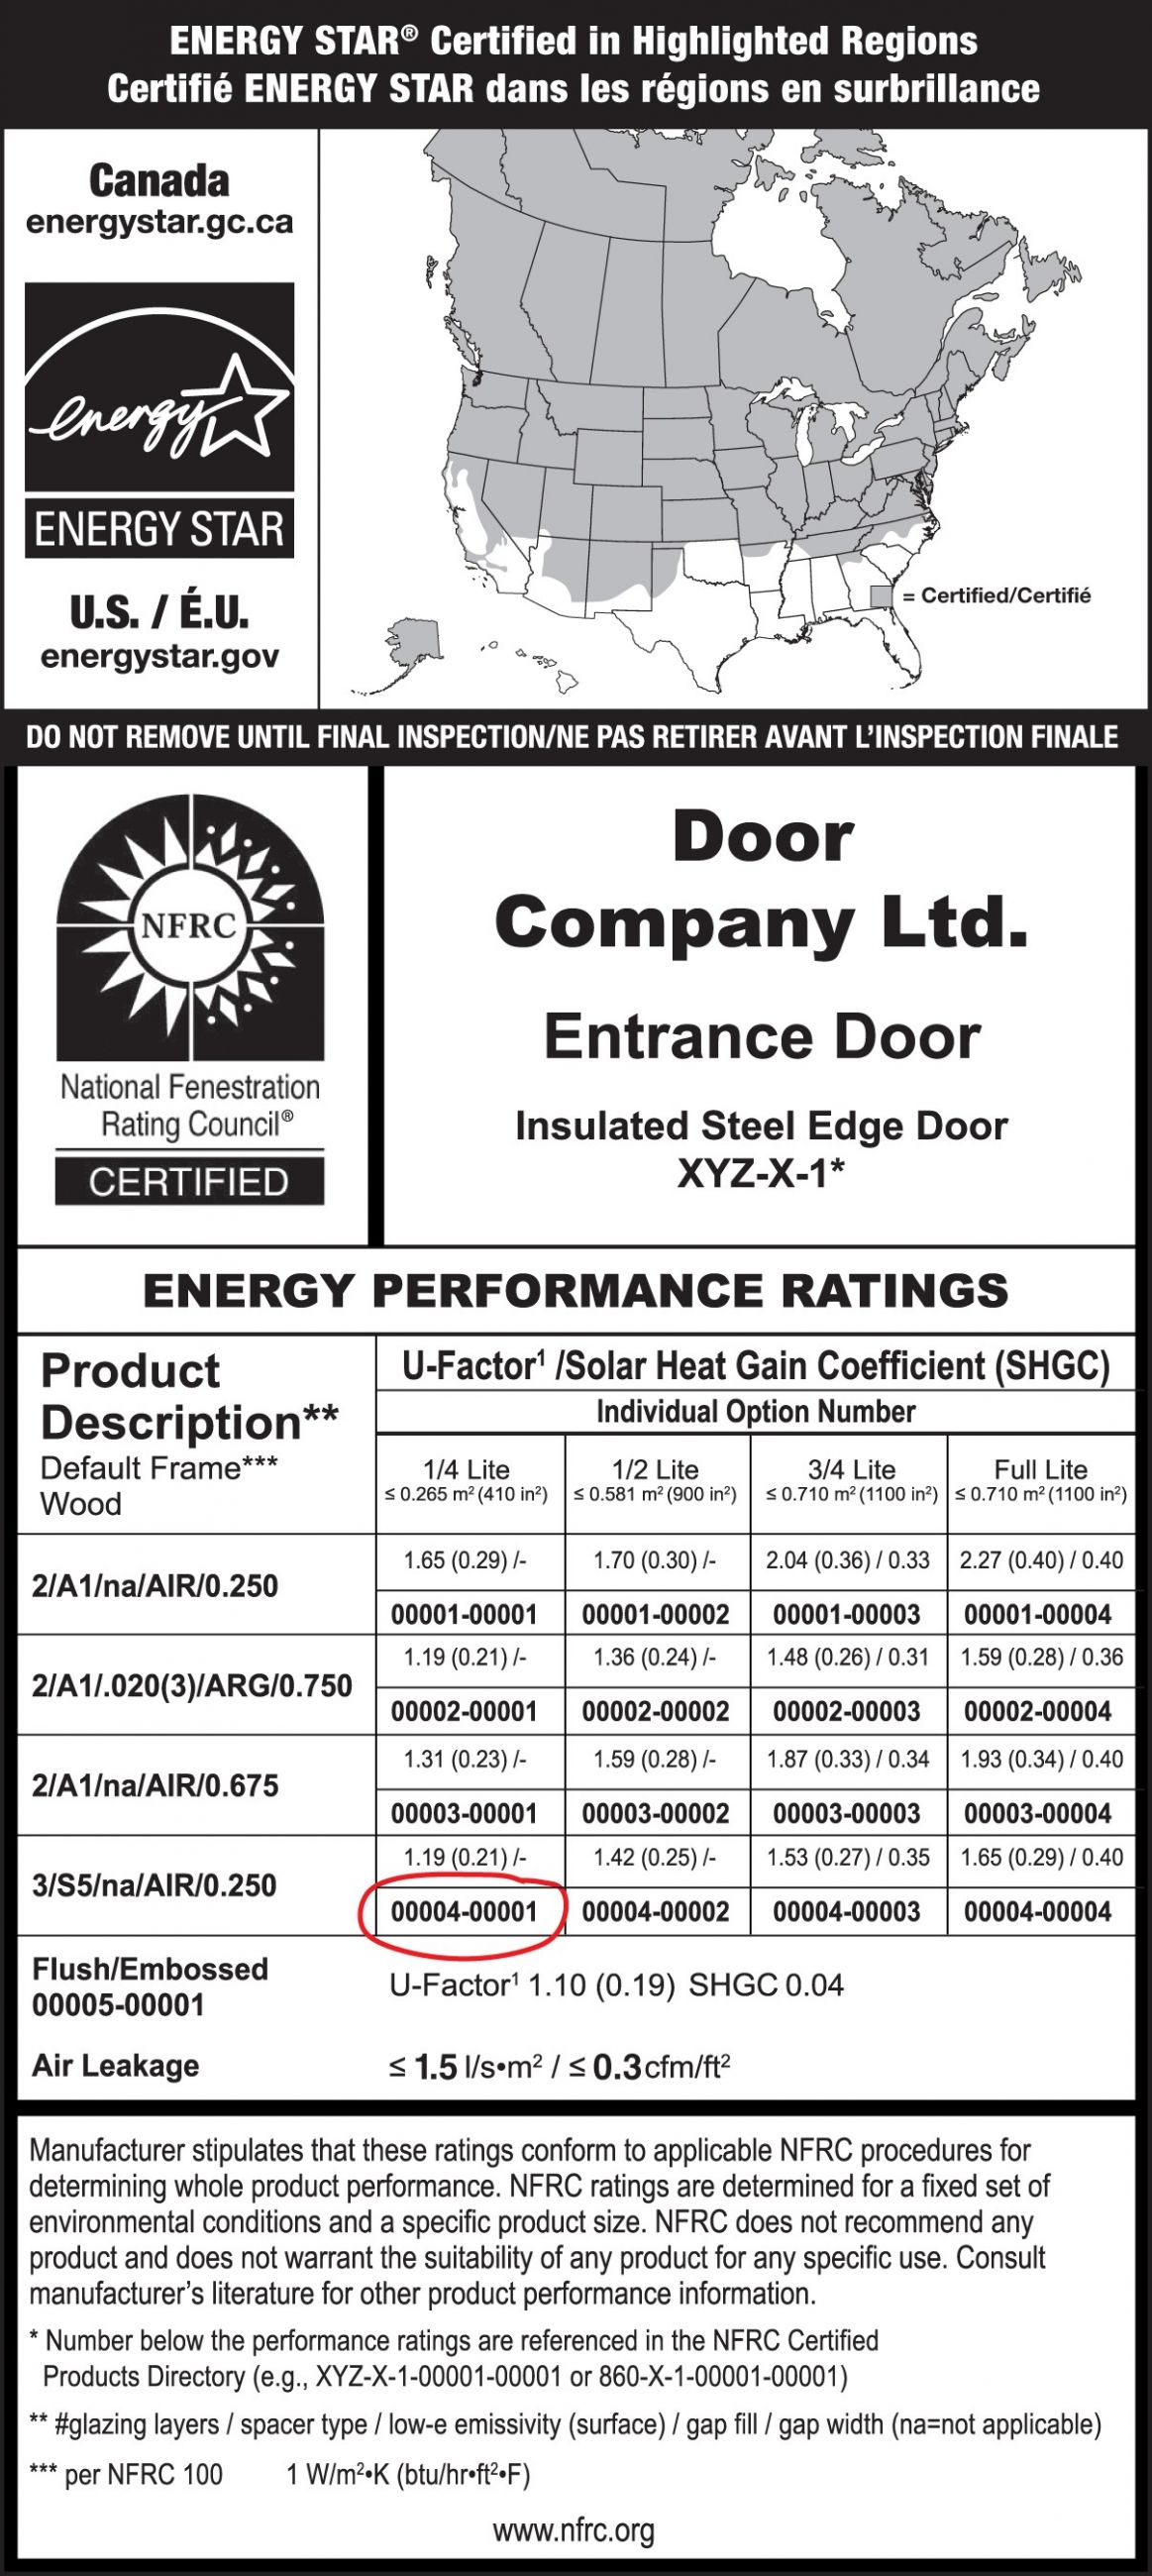 Sample ENERGY STAR / NFRC temporary label for a hinged door. The ENERGY STAR portion has an ENERGY STAR certification mark and a map of Canada / U.S.A. indicating that the product is certified for all of Canada and the Northern and North-Central zones in the U.S.A. The NFRC portion has a NFRC certification mark, brand name, product line code and the product's specific performance ratings for each glazing option.